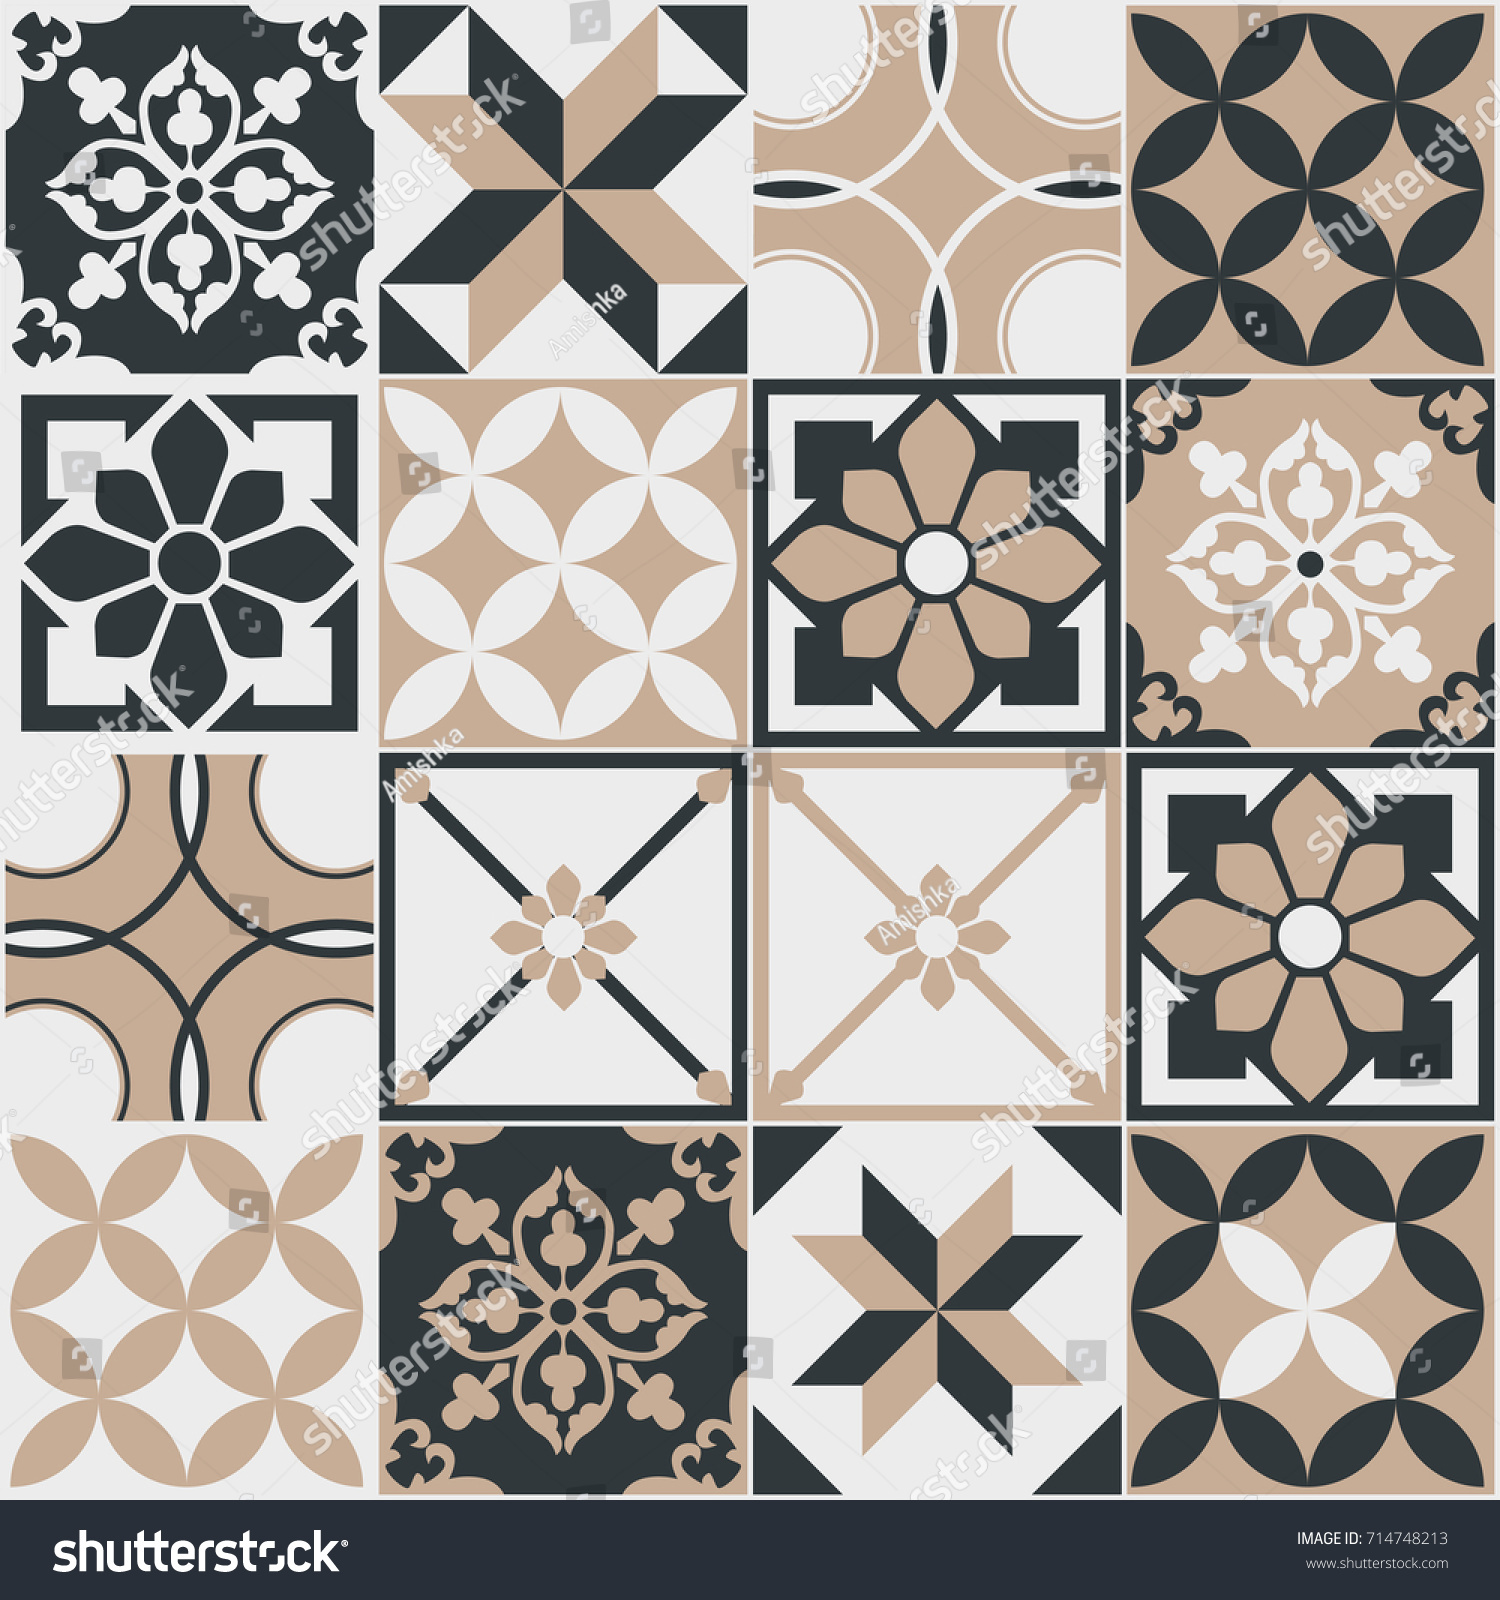 Seamless Pattern Tiles Vintage Decorative Design Stock Vector HD ...